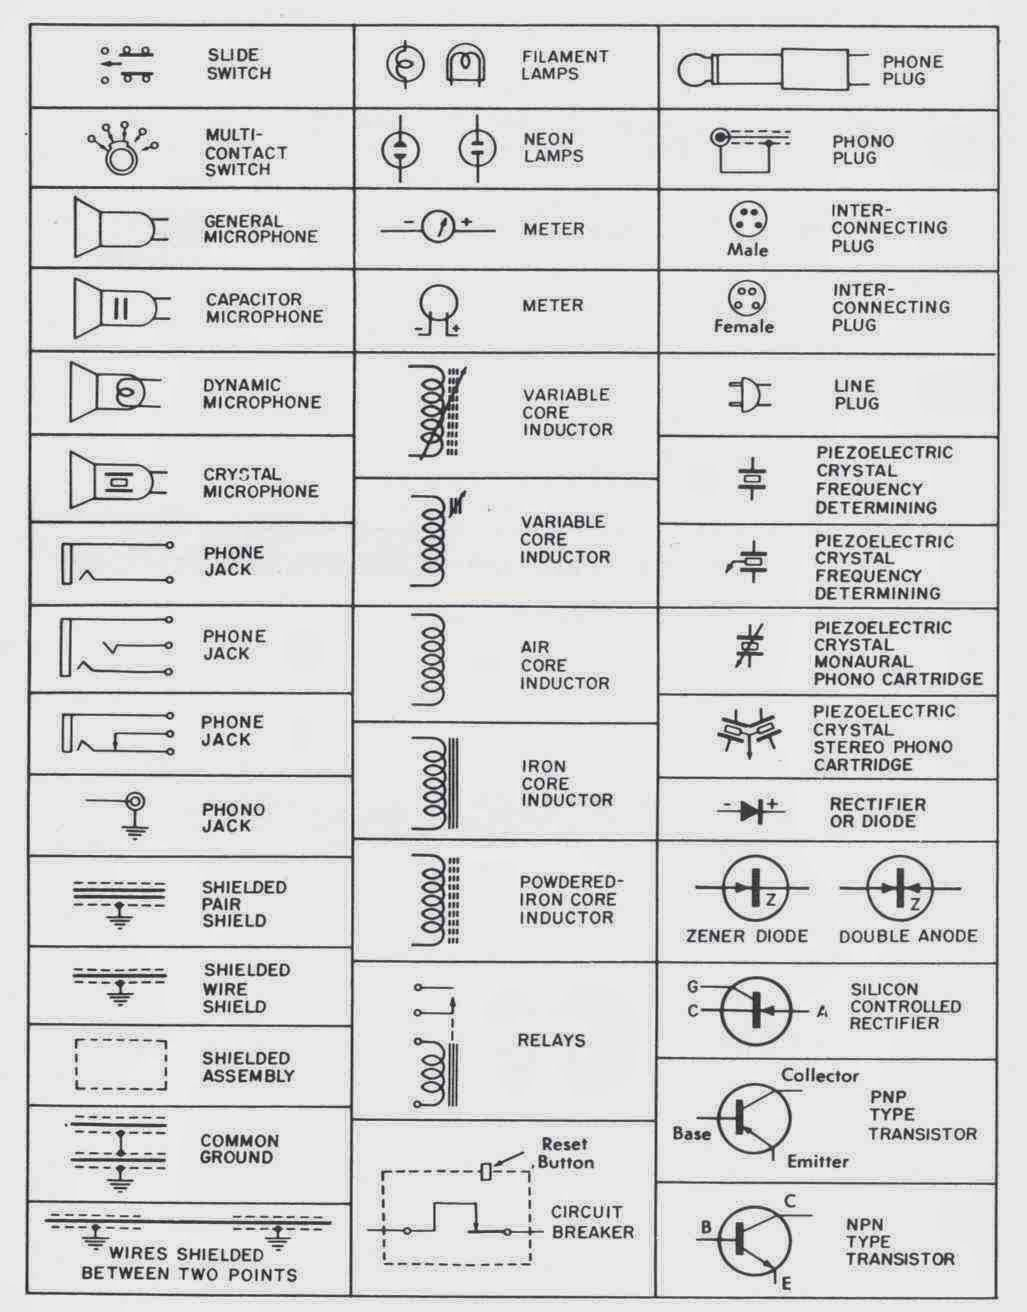 electrical symbols 11 electrical engineering pics [ 1027 x 1312 Pixel ]